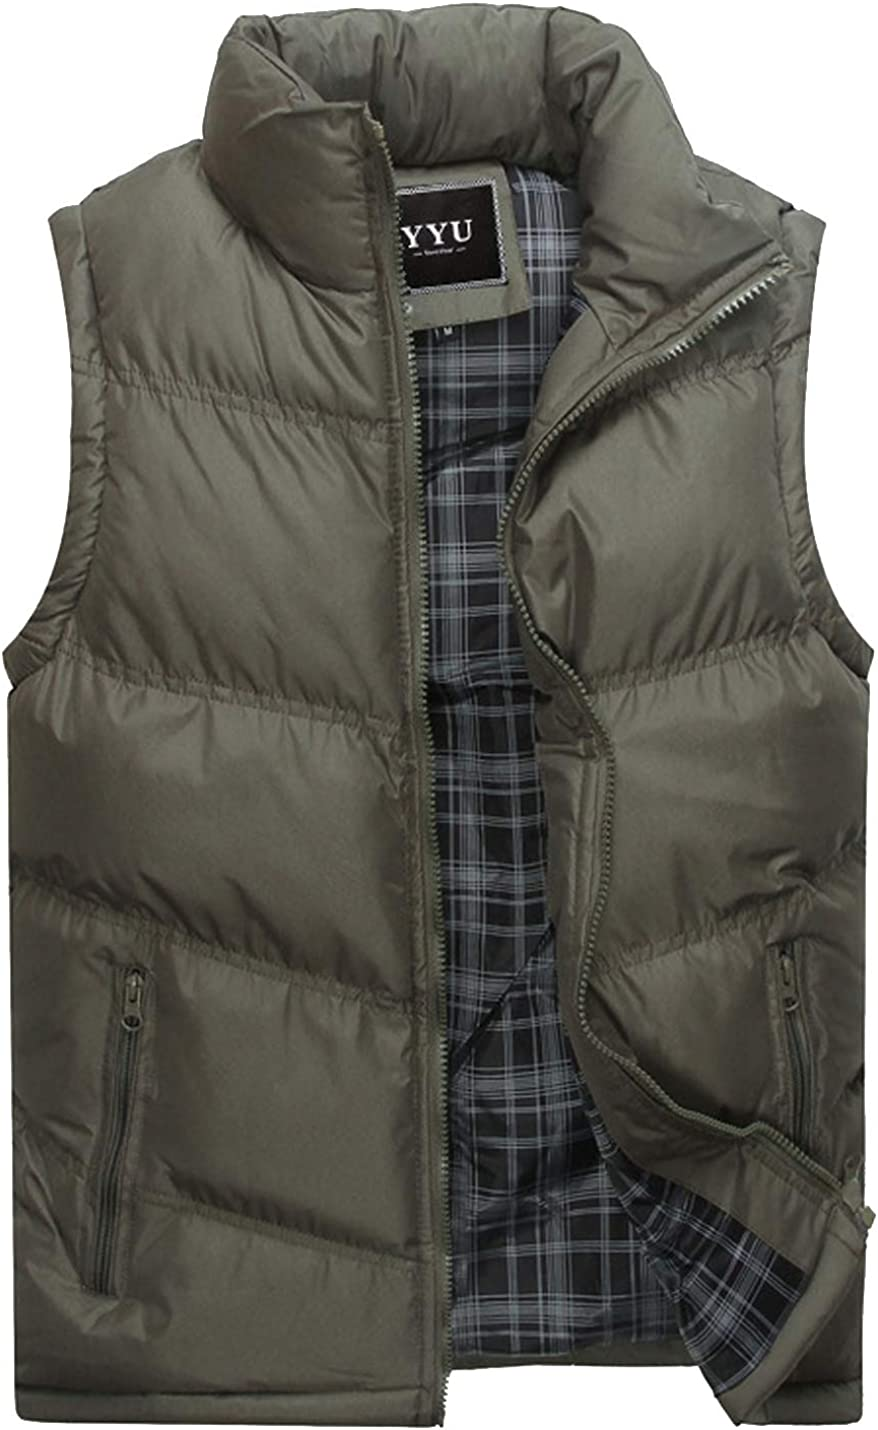 Flygo Men's Casual Quilted Puffer Lightweight Vest Gilets Sleeveless Jacket Coat